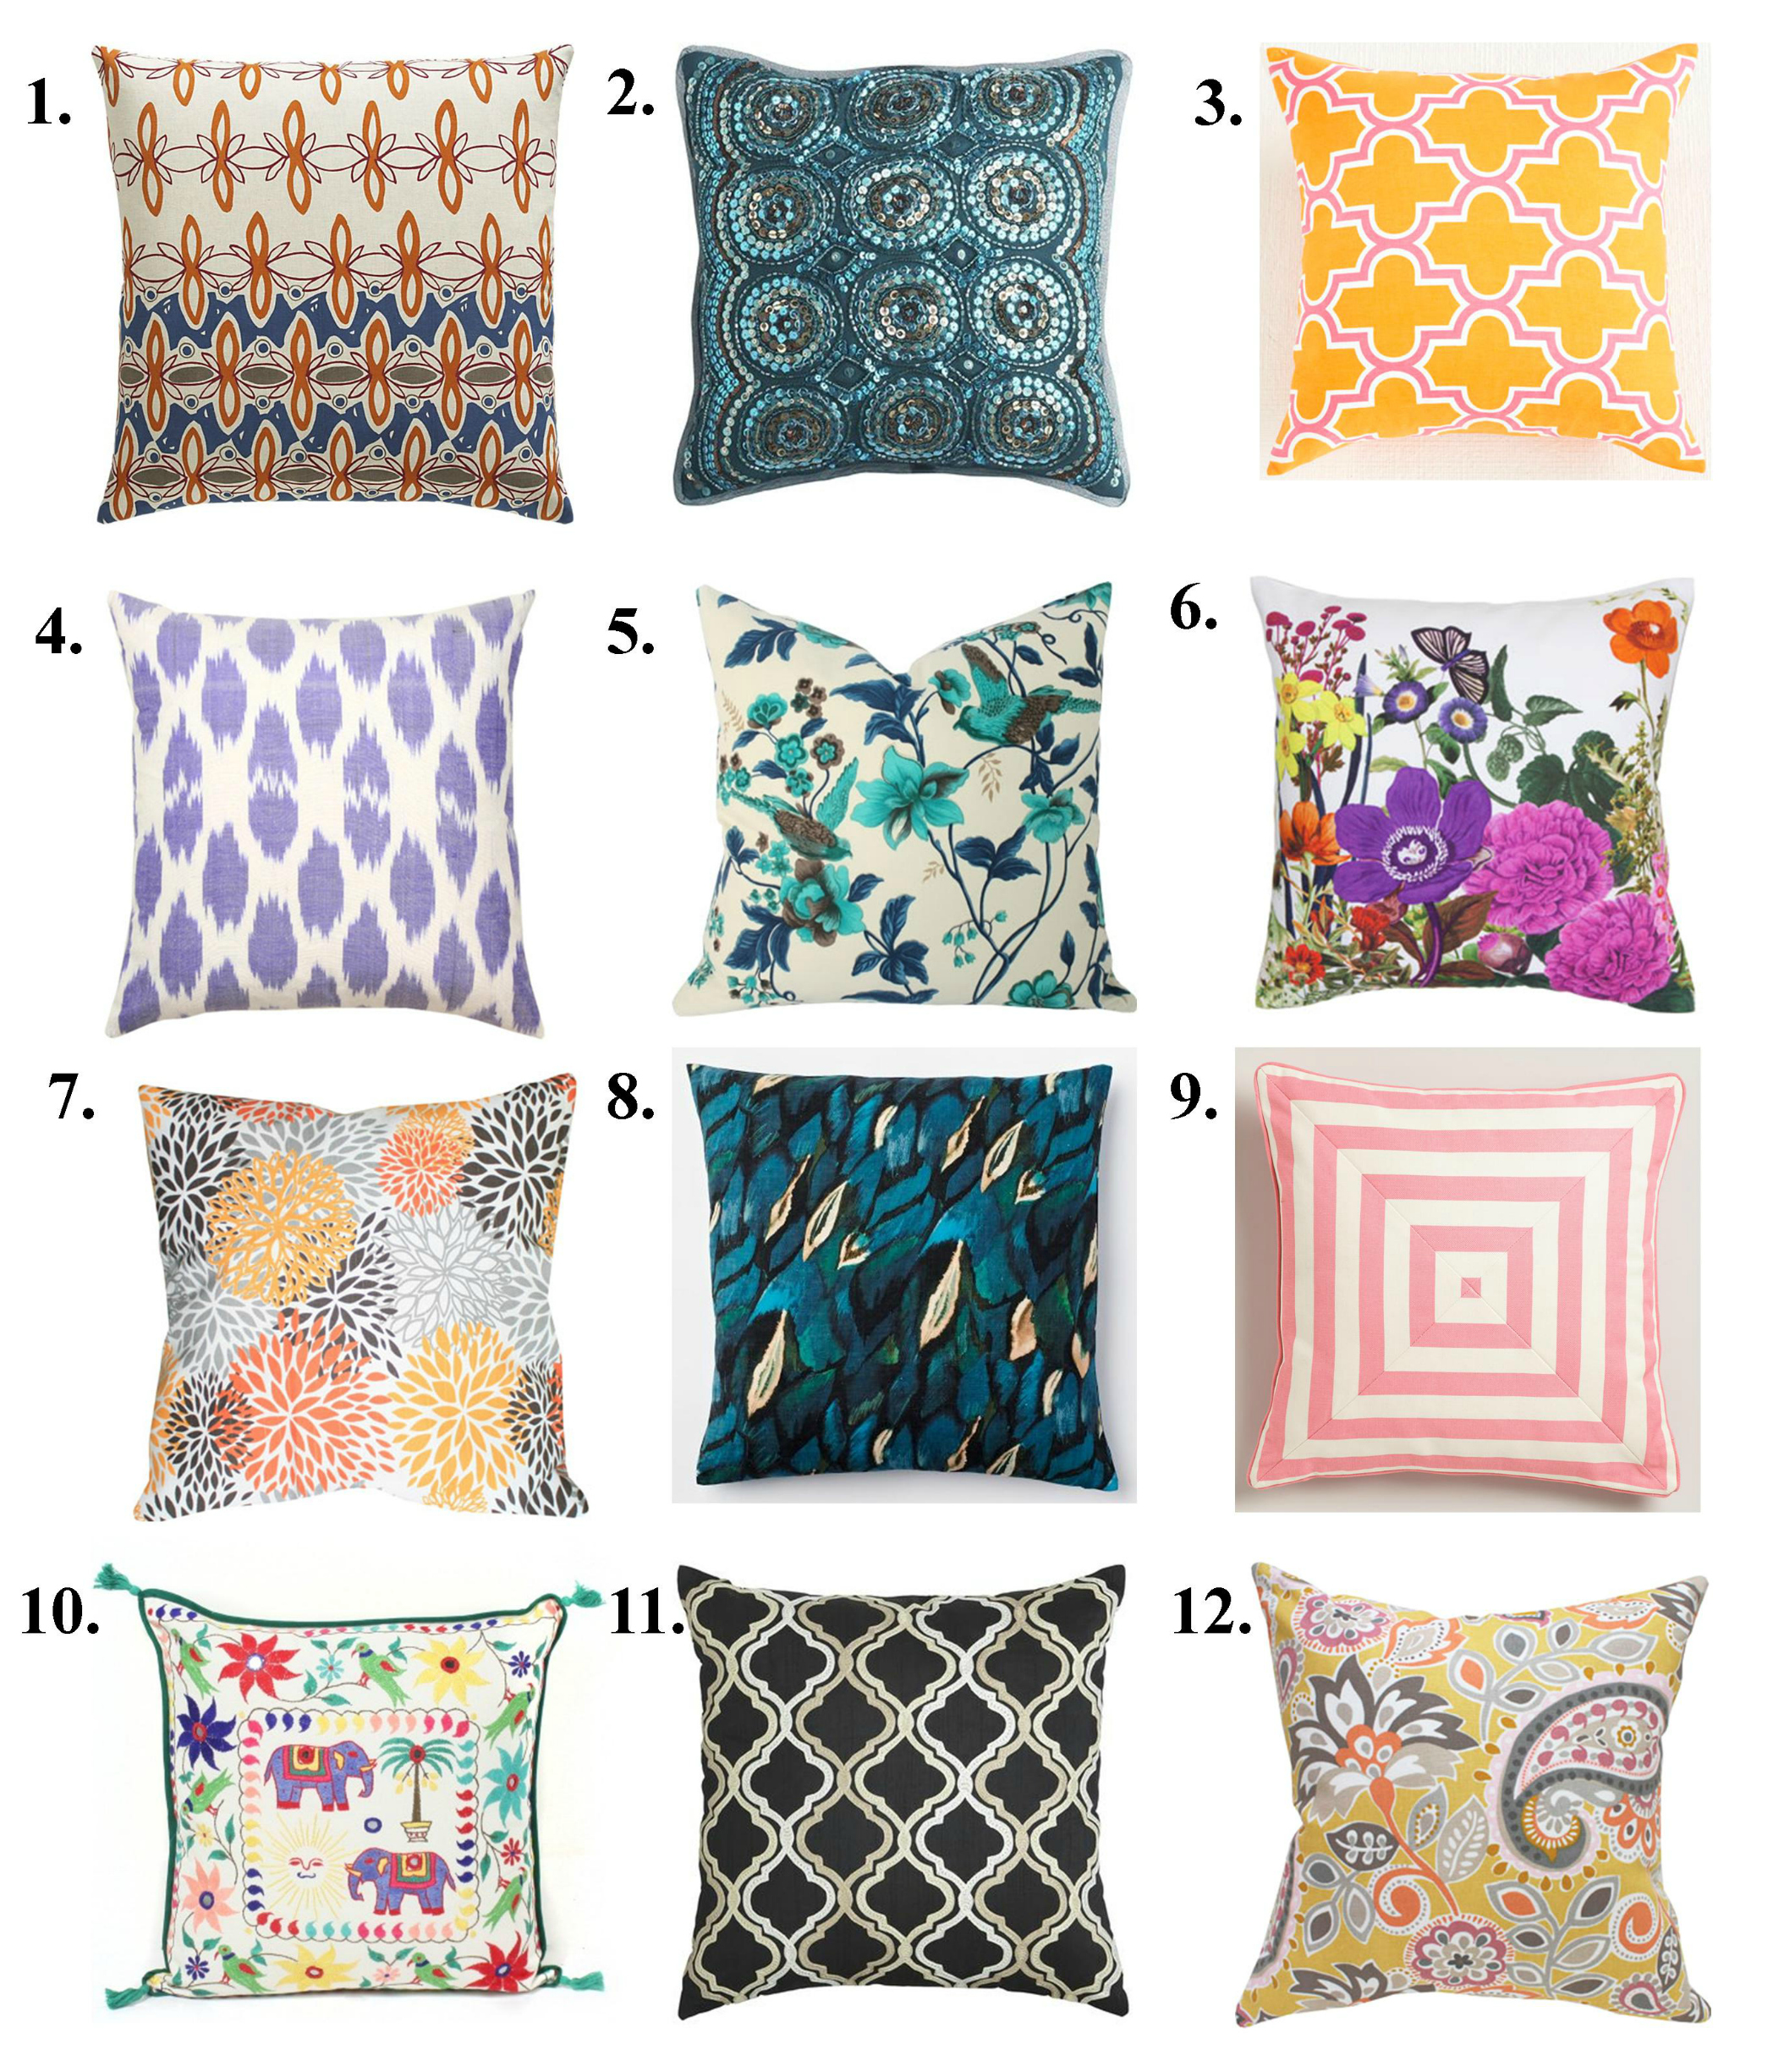 sofa pillows collection with popular colors